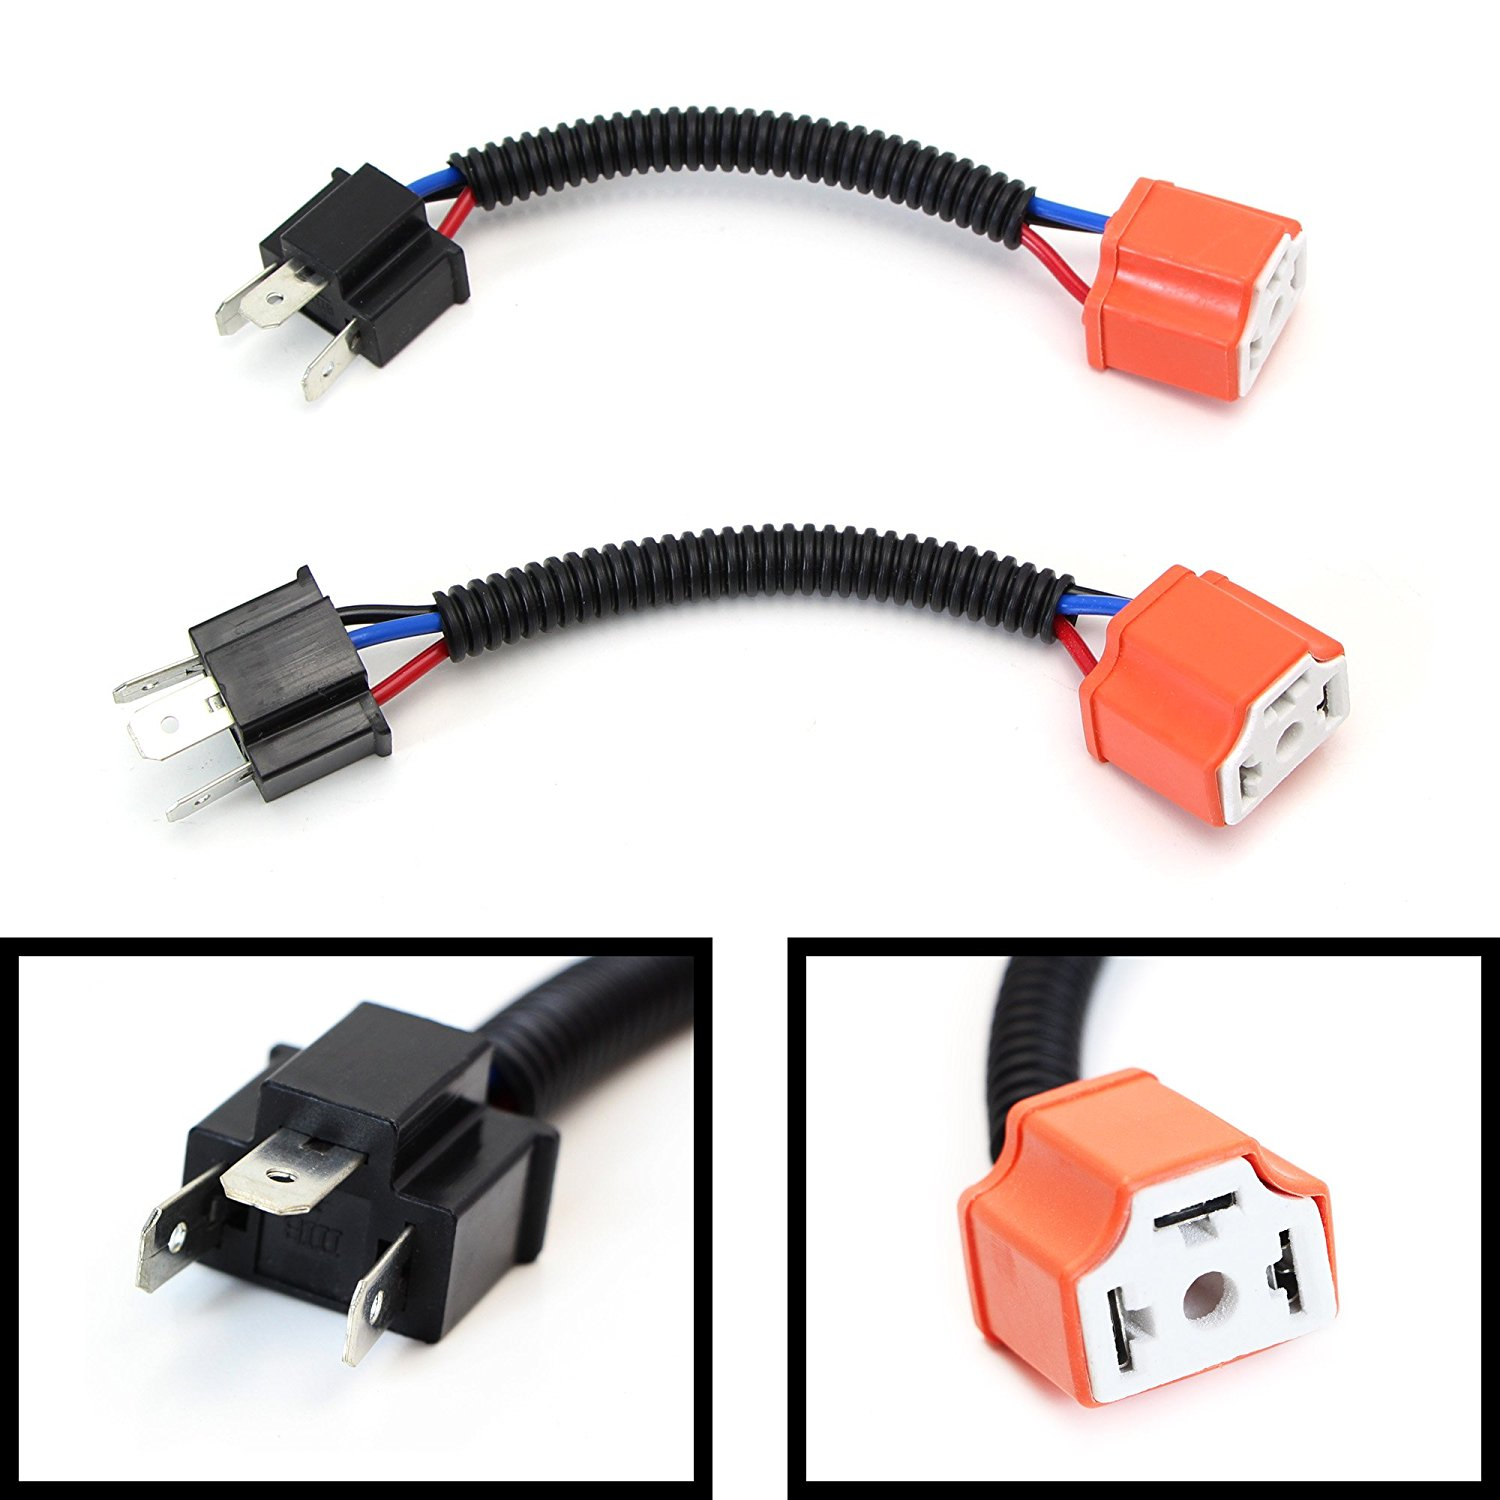 H4 High Quality Ceramic Wiring Harness Sockets Car Lamp ... H Wiring Harness Adapter Diagram on